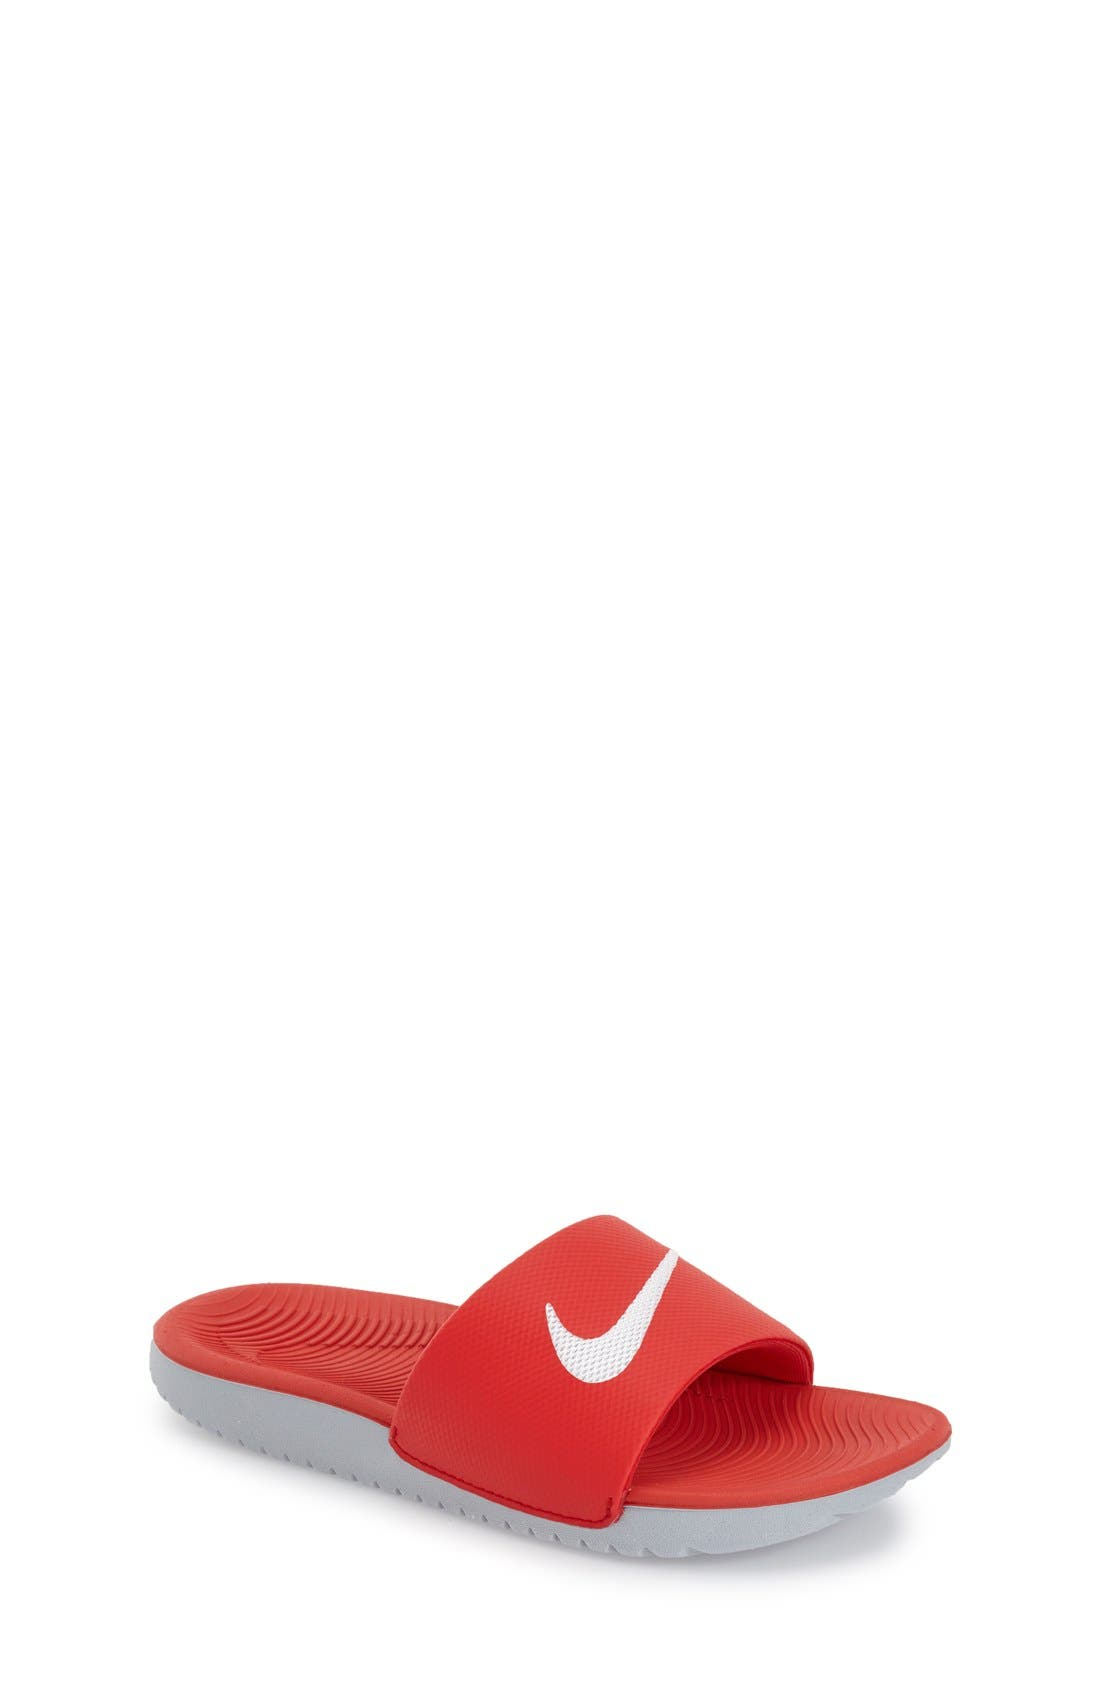 Nike 'Kawa' Slide Sandal (Toddler, Little Kid & Big Kid)